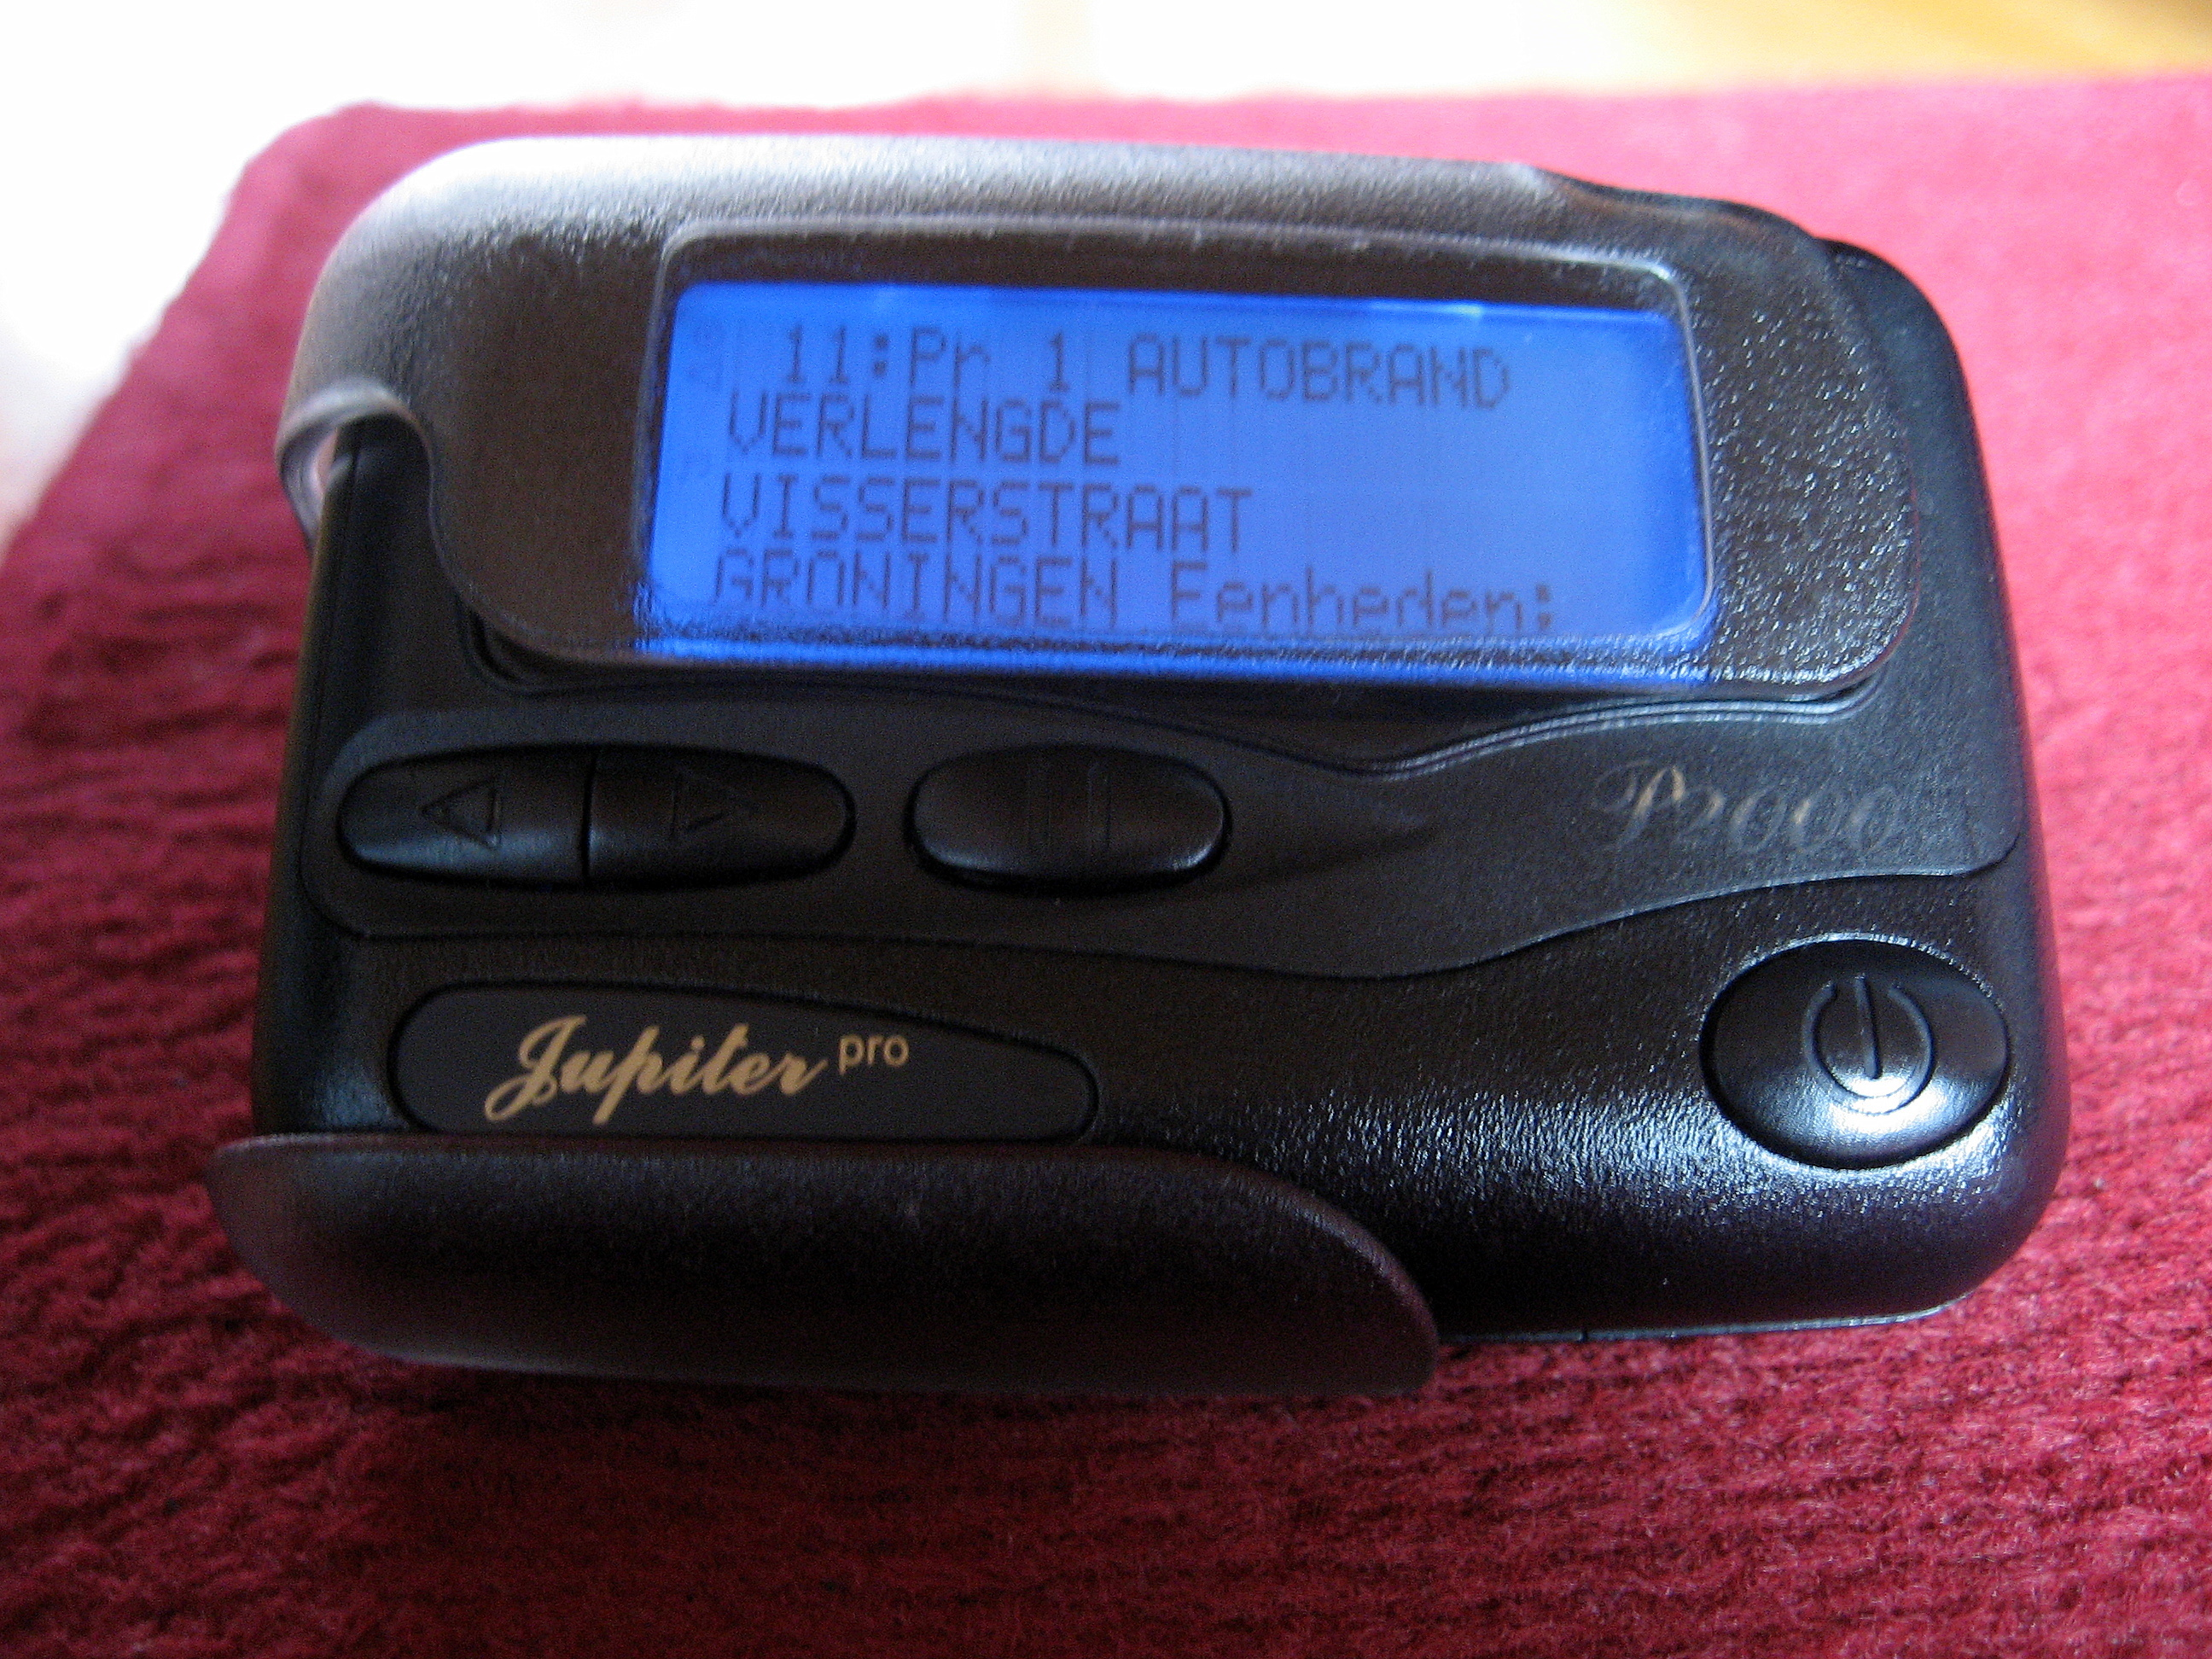 Pager (©wikimedia)